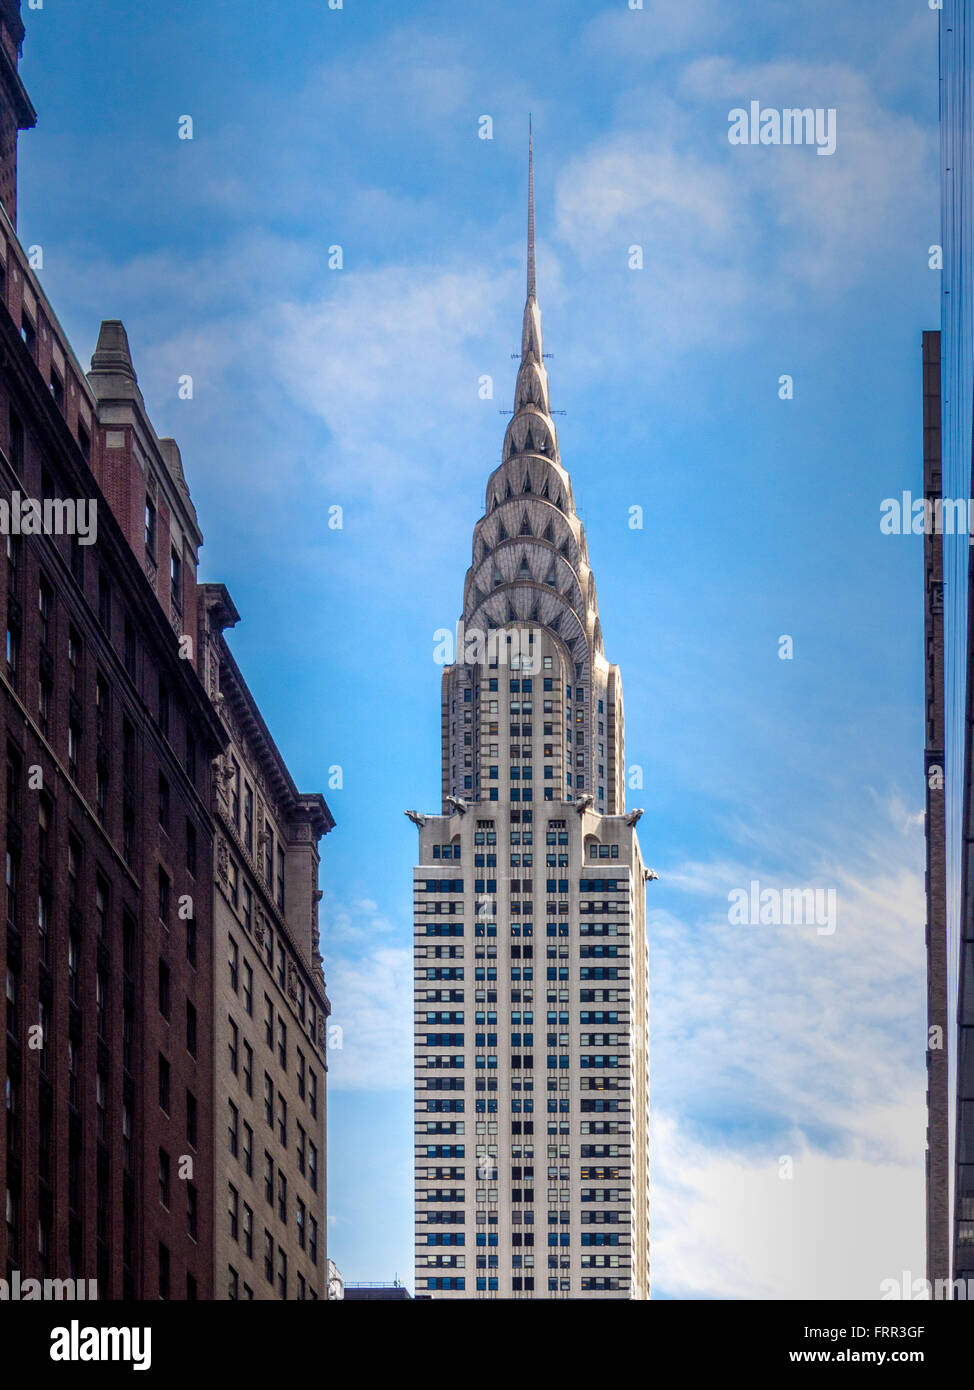 The Chrysler Building, East Side of Midtown Manhattan, New York City, USA. - Stock Image